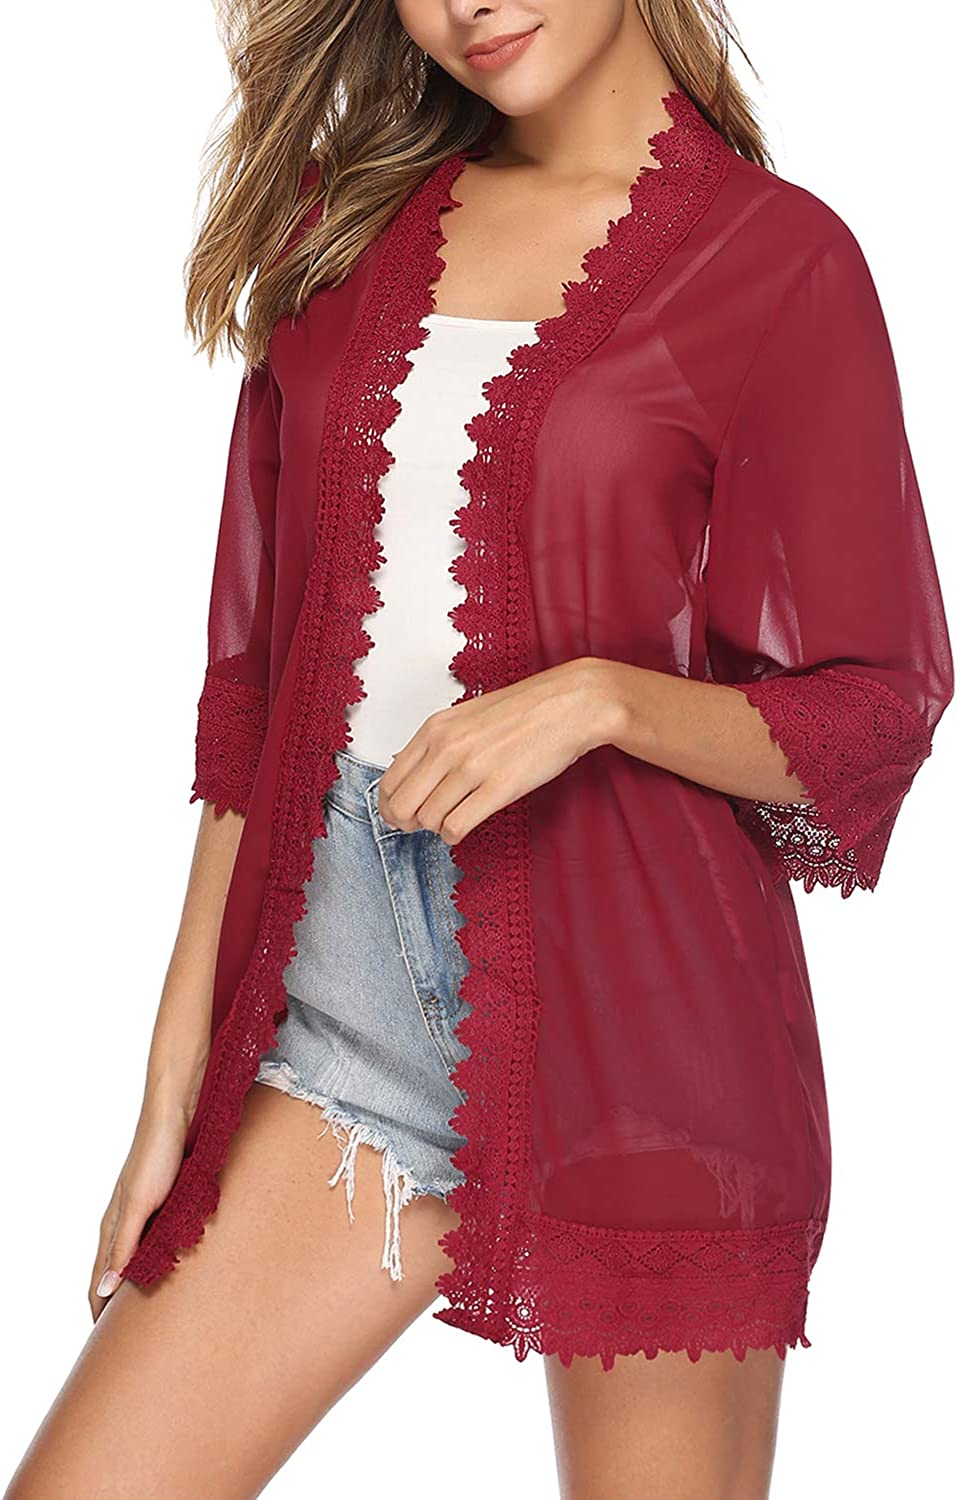 Hawiton Womens 3//4 Sleeve Chiffon Lace Kimono Cardigans Cover Up Casual Blouse Tops